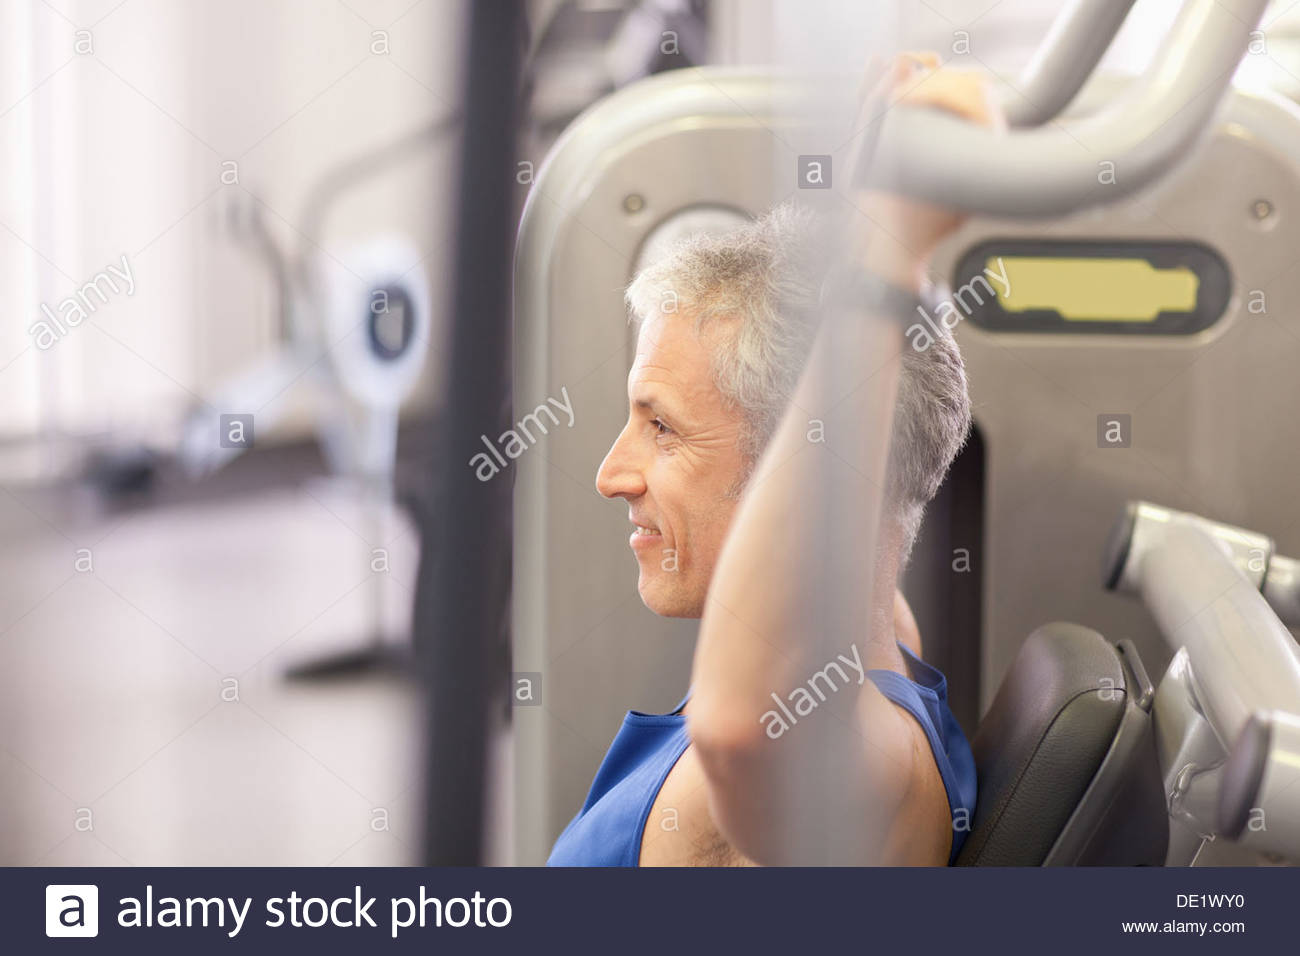 Portrait of smiling man using exercise machine in gymnasium - Stock Image